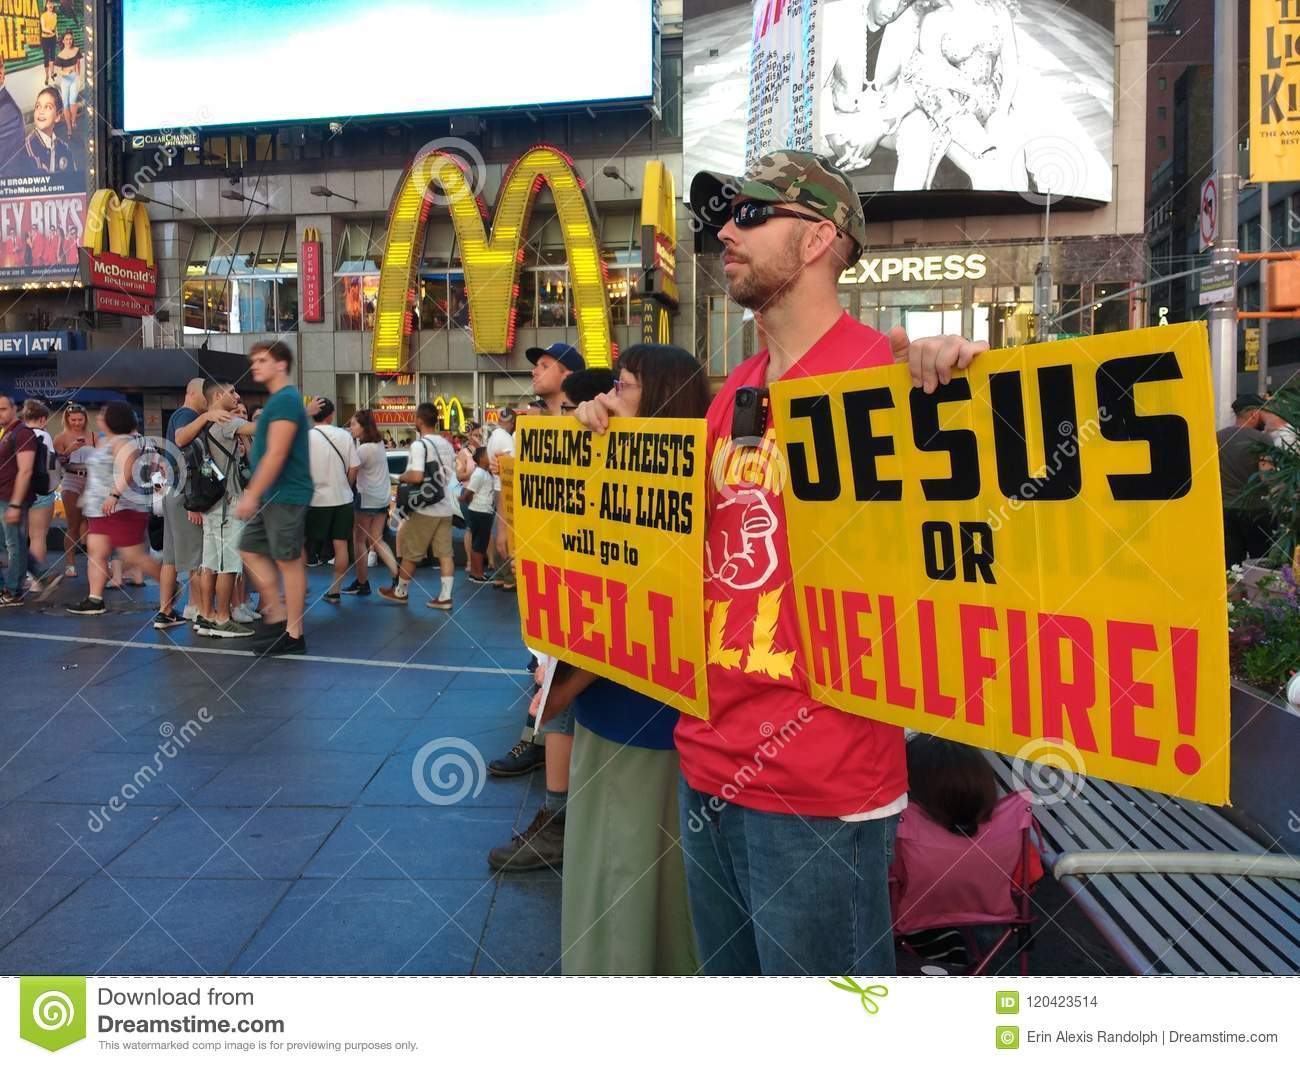 Times Square, Religious Preaching, Jesus Or Hellfire! NYC, NY, USA